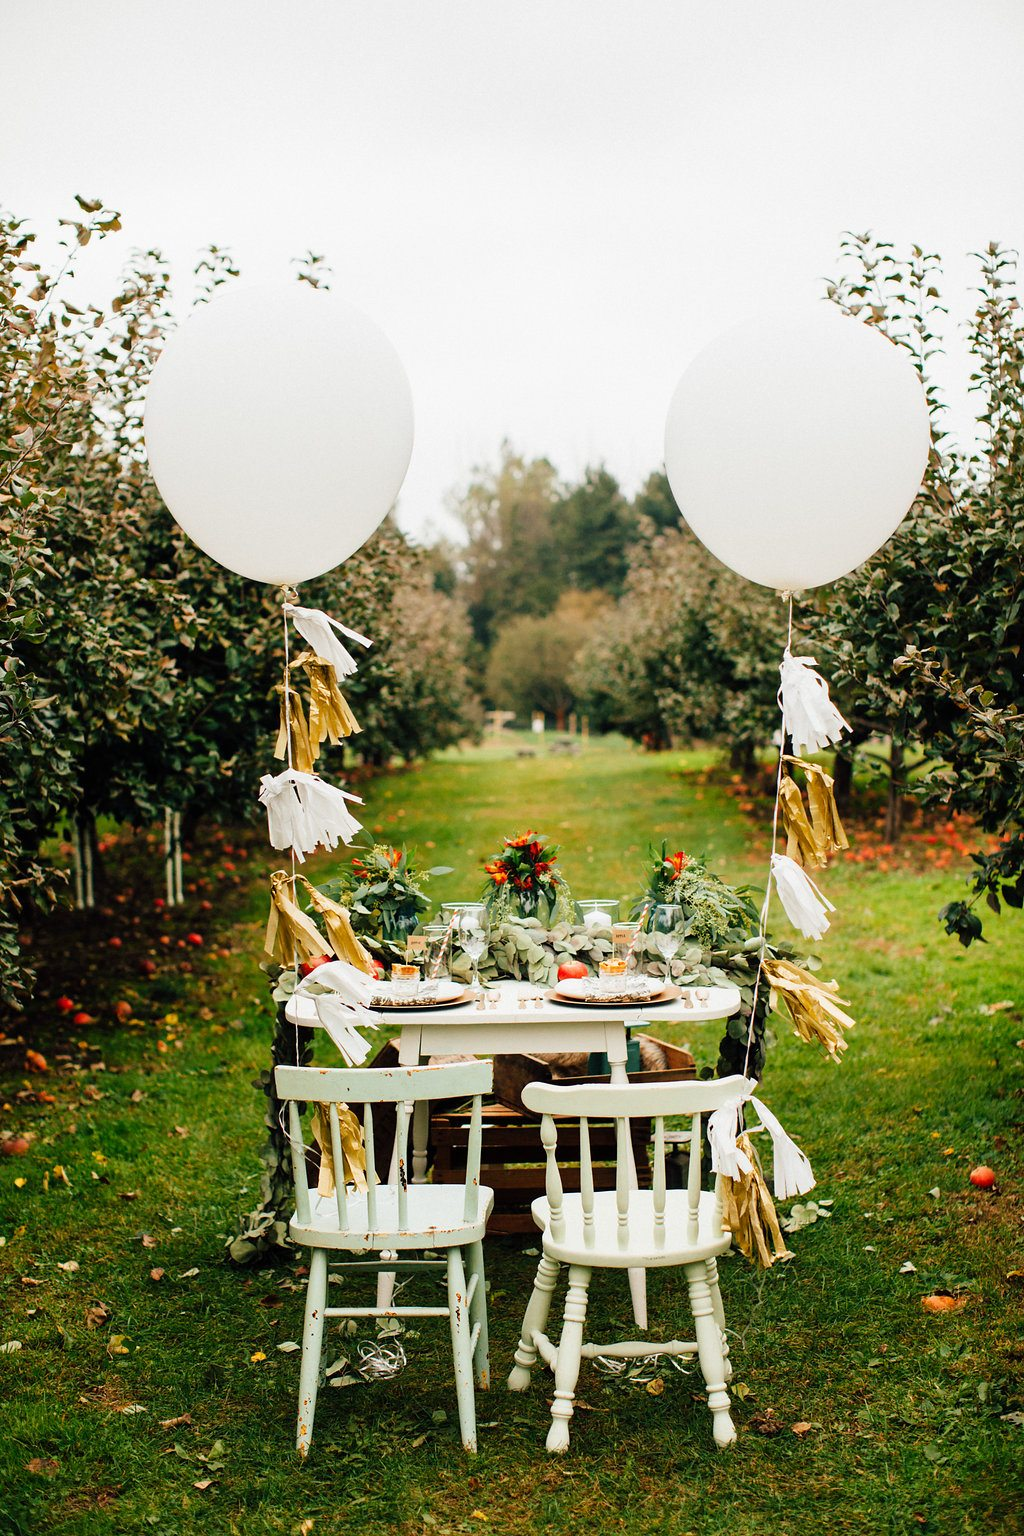 An Apple Farm Picnic featured by @cydconverse